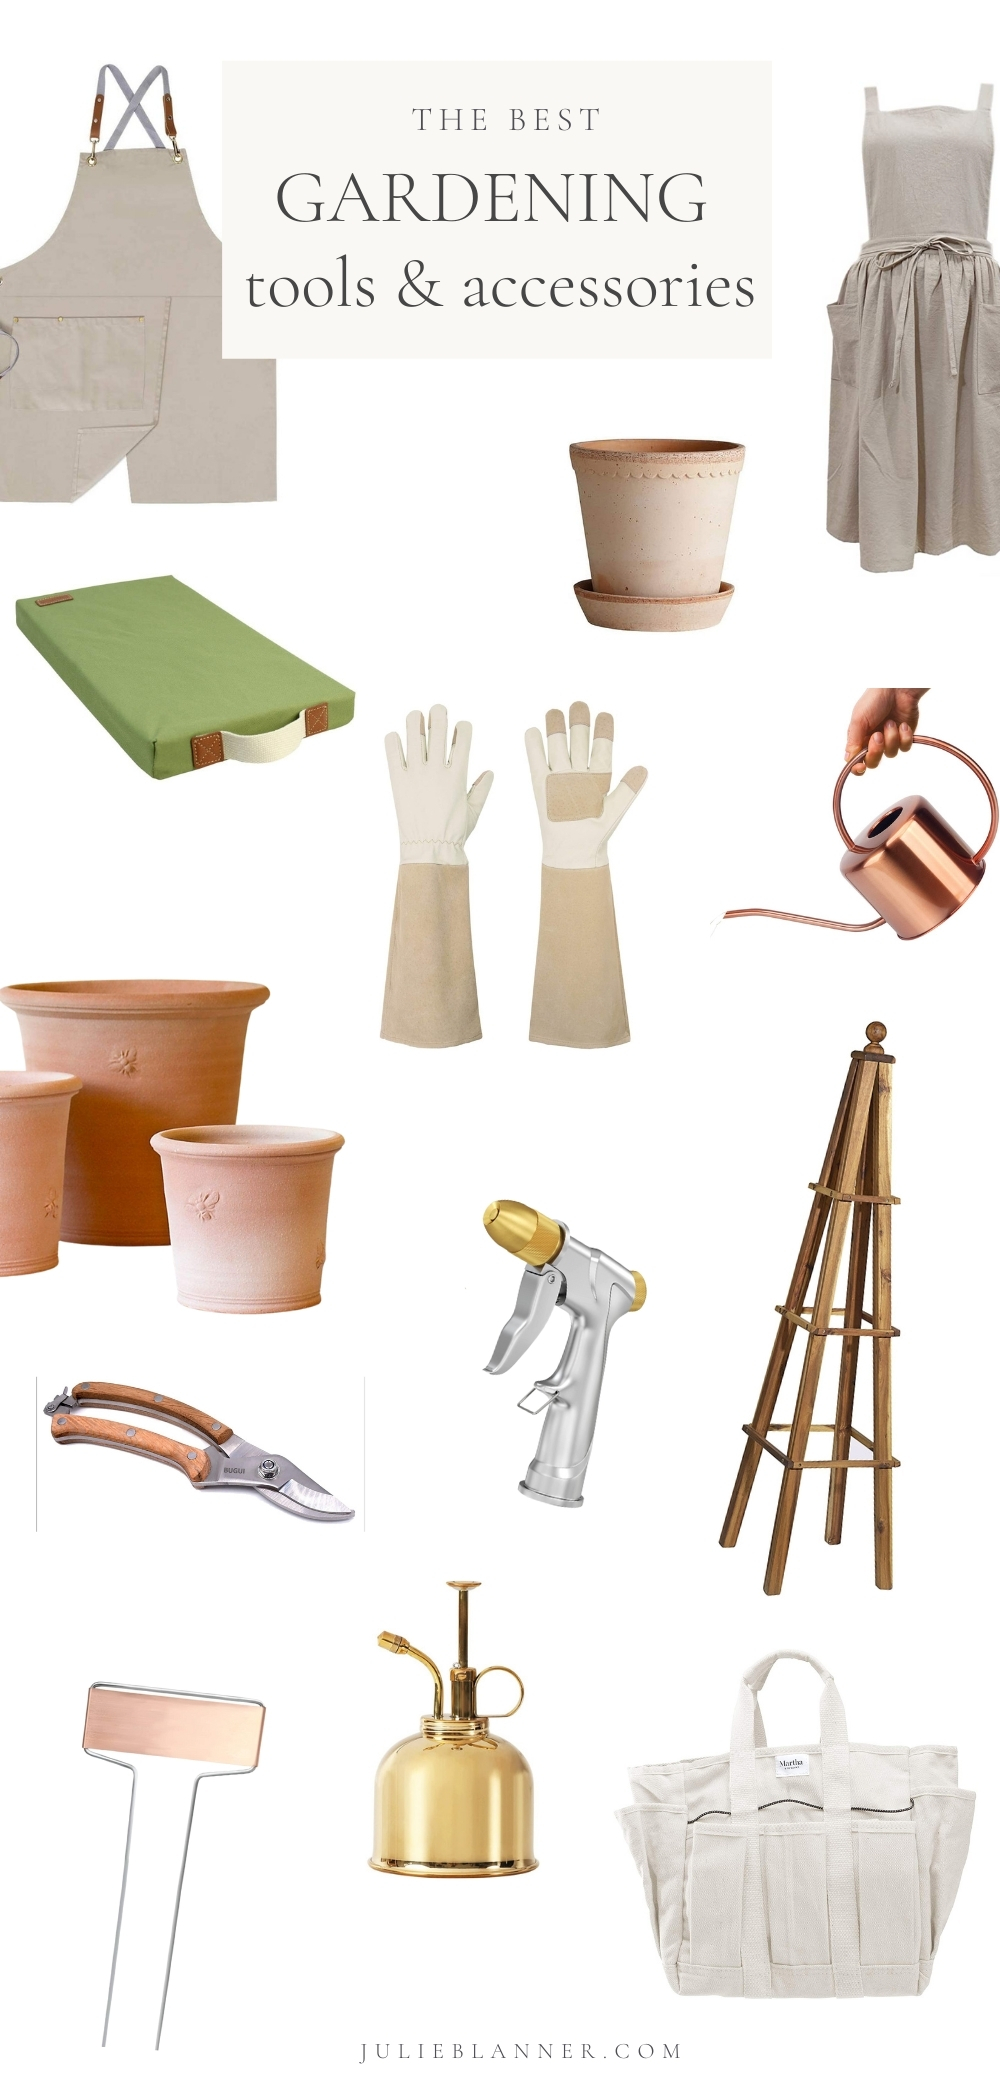 gardening tools and accessories graphic displaying items with text overlay